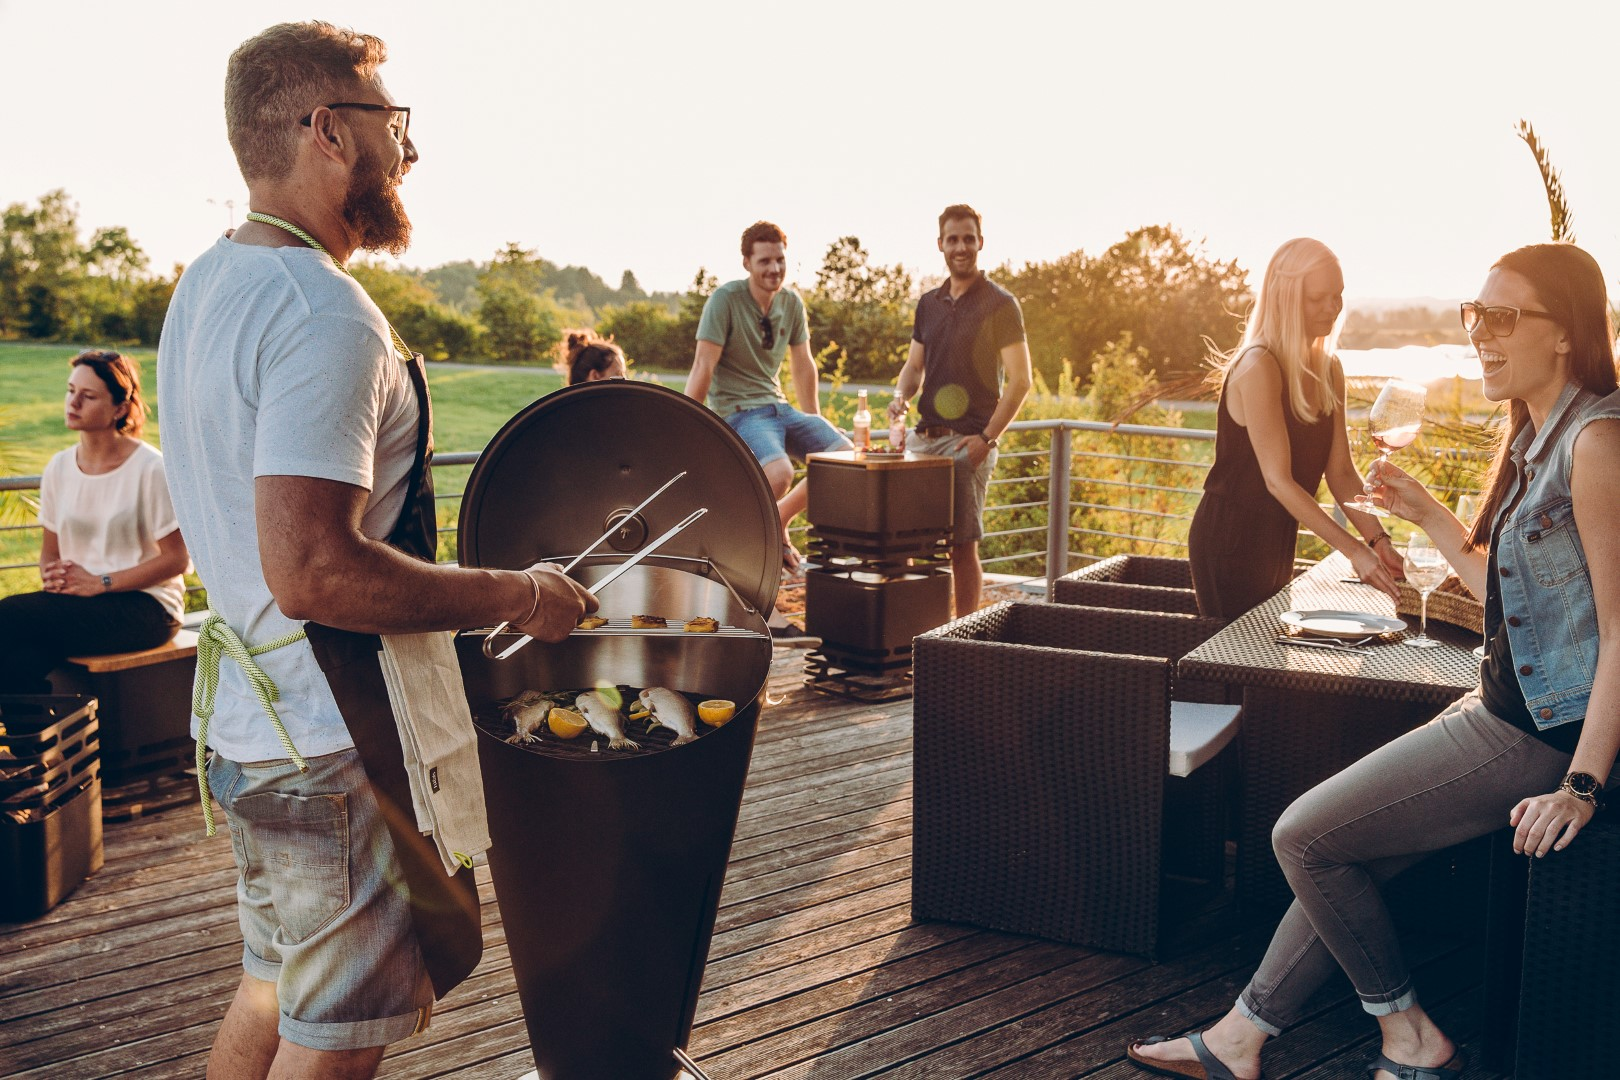 barbecue surrounded by people